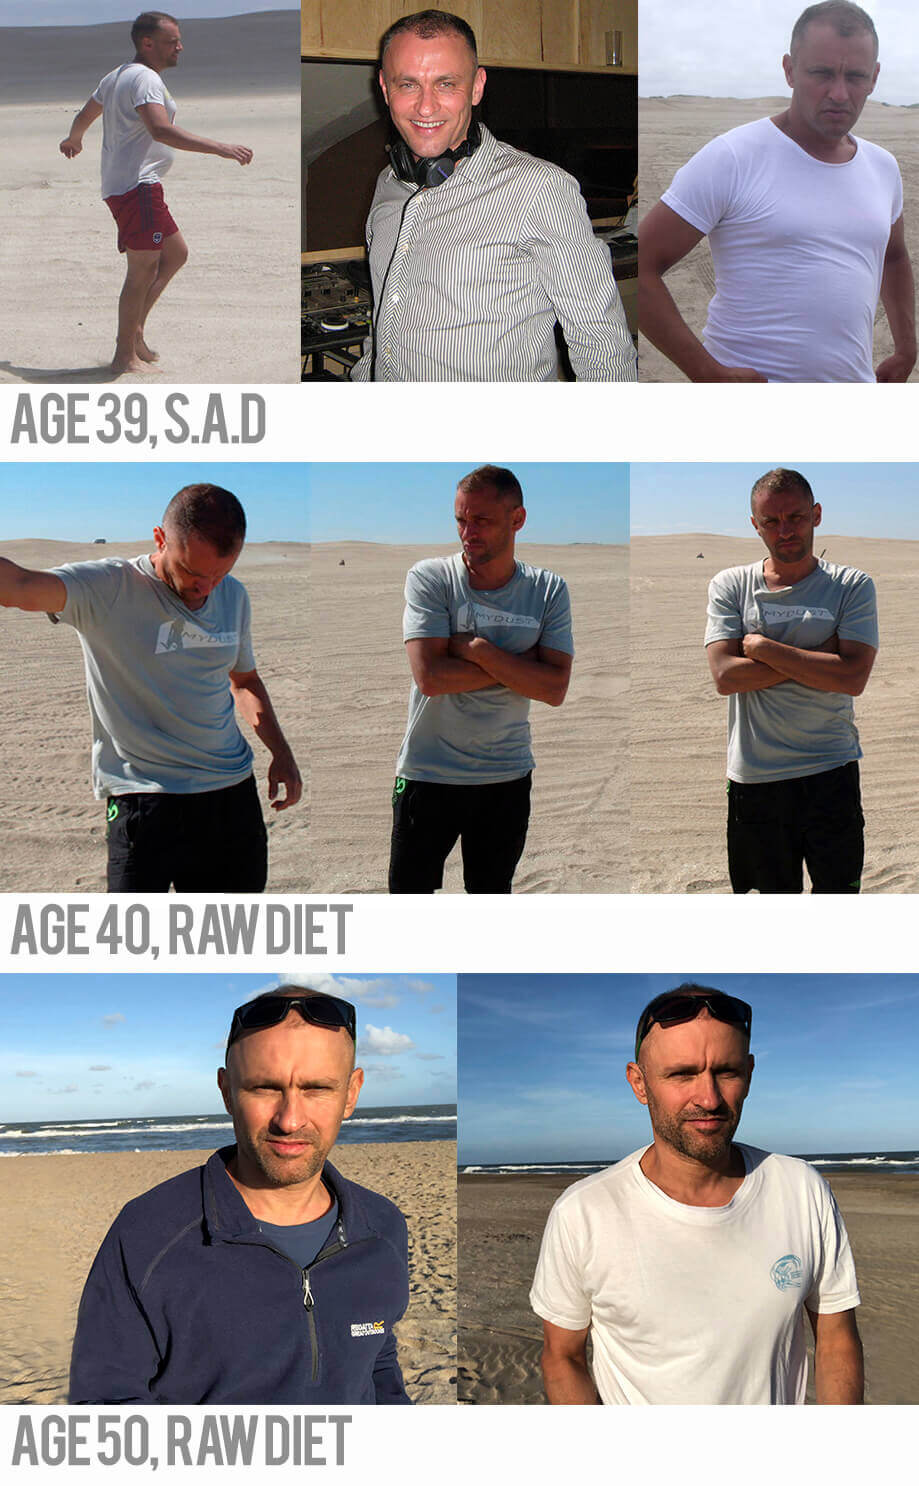 As clearly shown in the pictures, my raw food transformation isn't a fad diet. I look just as good at 50 years of age as I did when I was 40, proving my raw food approach not only works, but is sustainable.